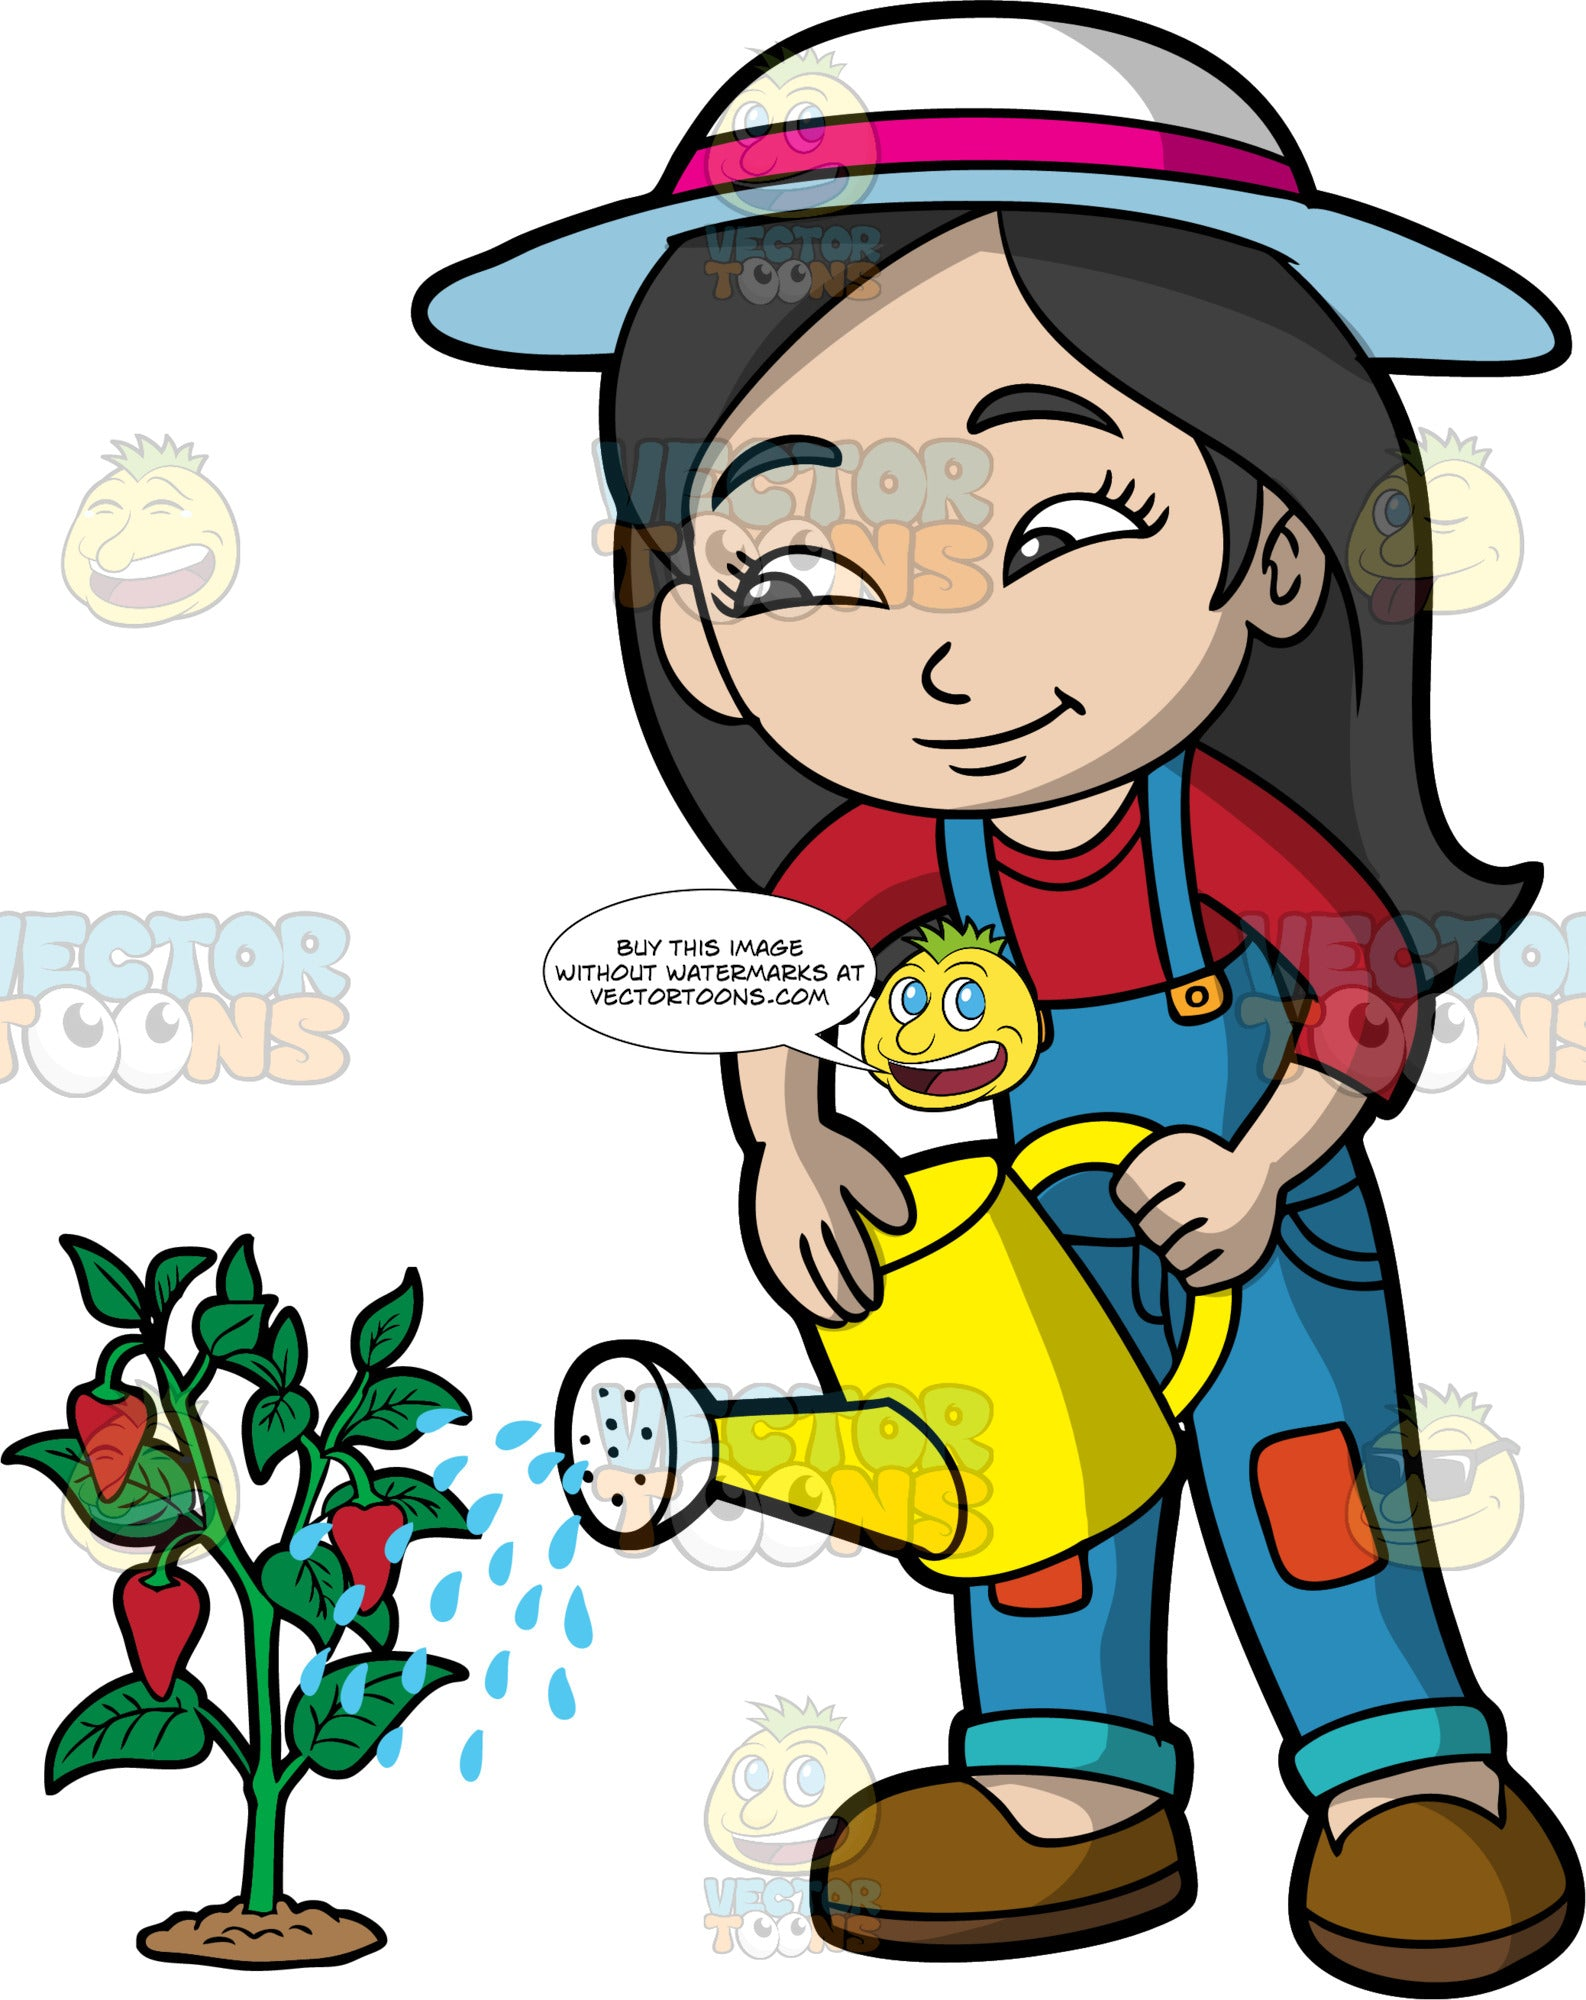 An Asian girl watering a strawberry plant. An Asian girl with long black hair, wearing blue overalls, a red shirt, brown shoes, and a sun hat, using a yellow watering can to water a strawberry plant